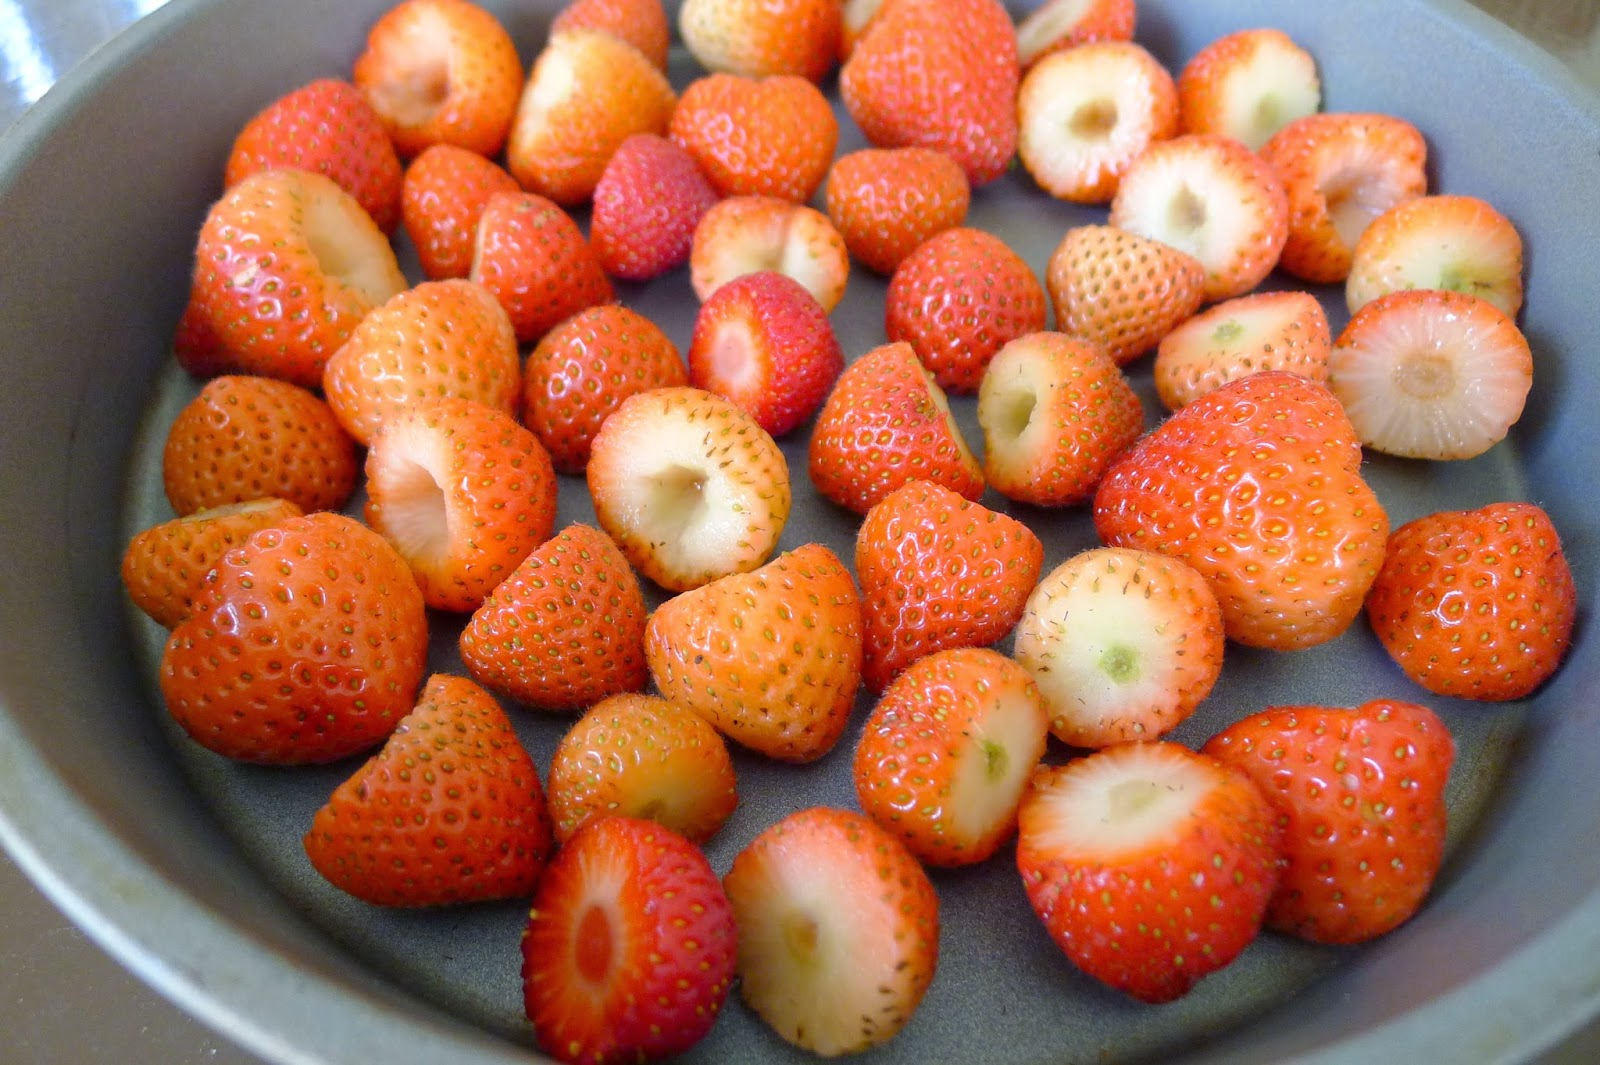 Freezing strawberries, recipes with strawberries